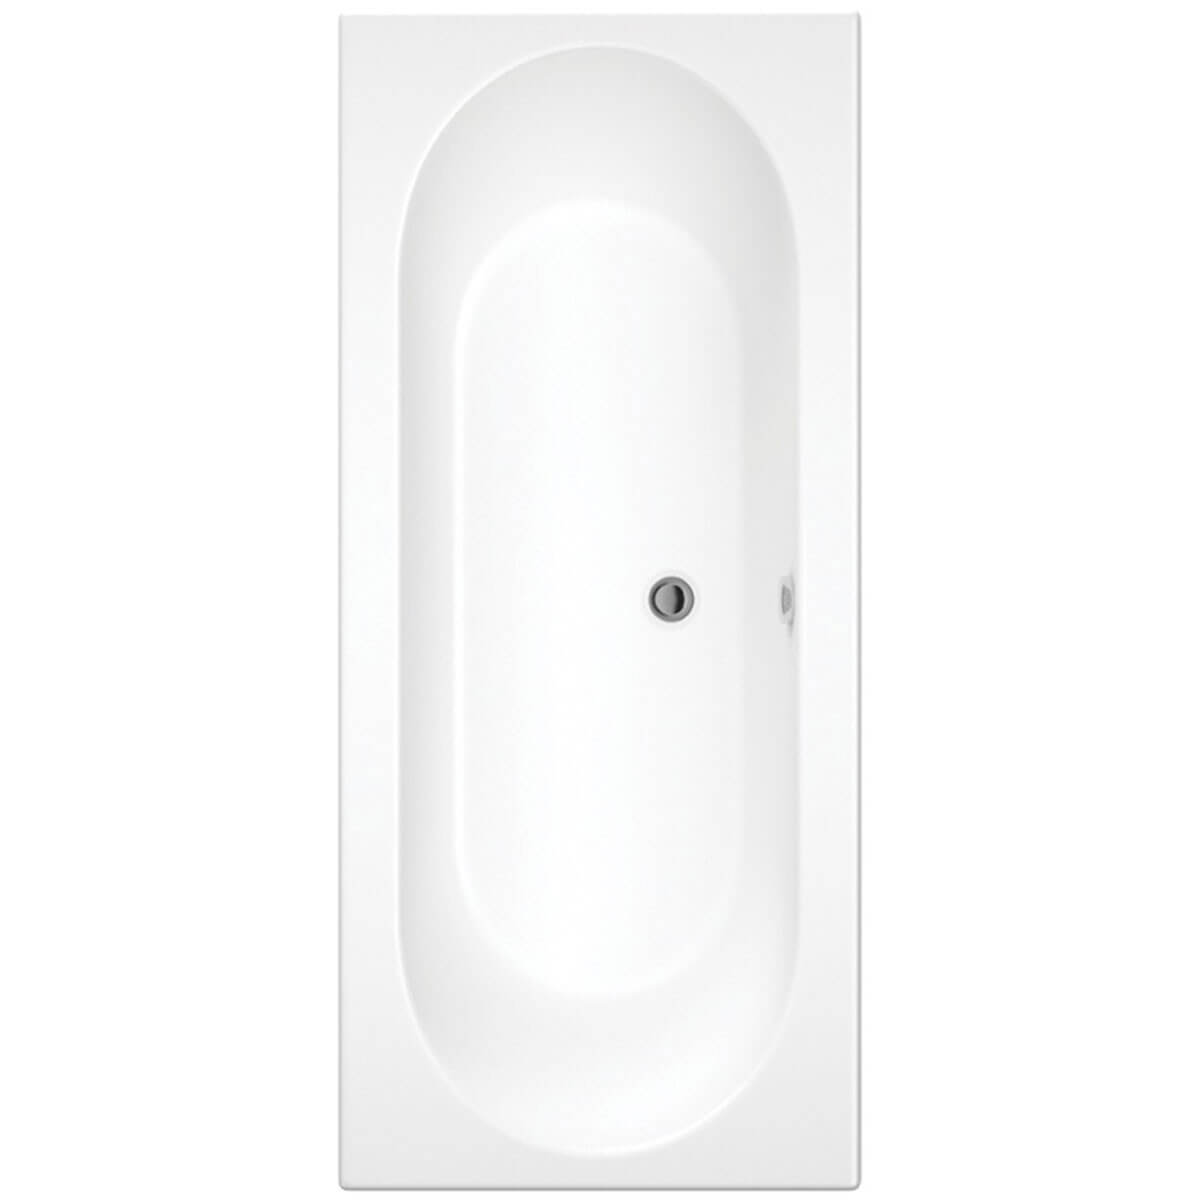 Trojan-Cascade-Double-Ended-Bath-1800-x-800-794-Bathroom-Supastore-31